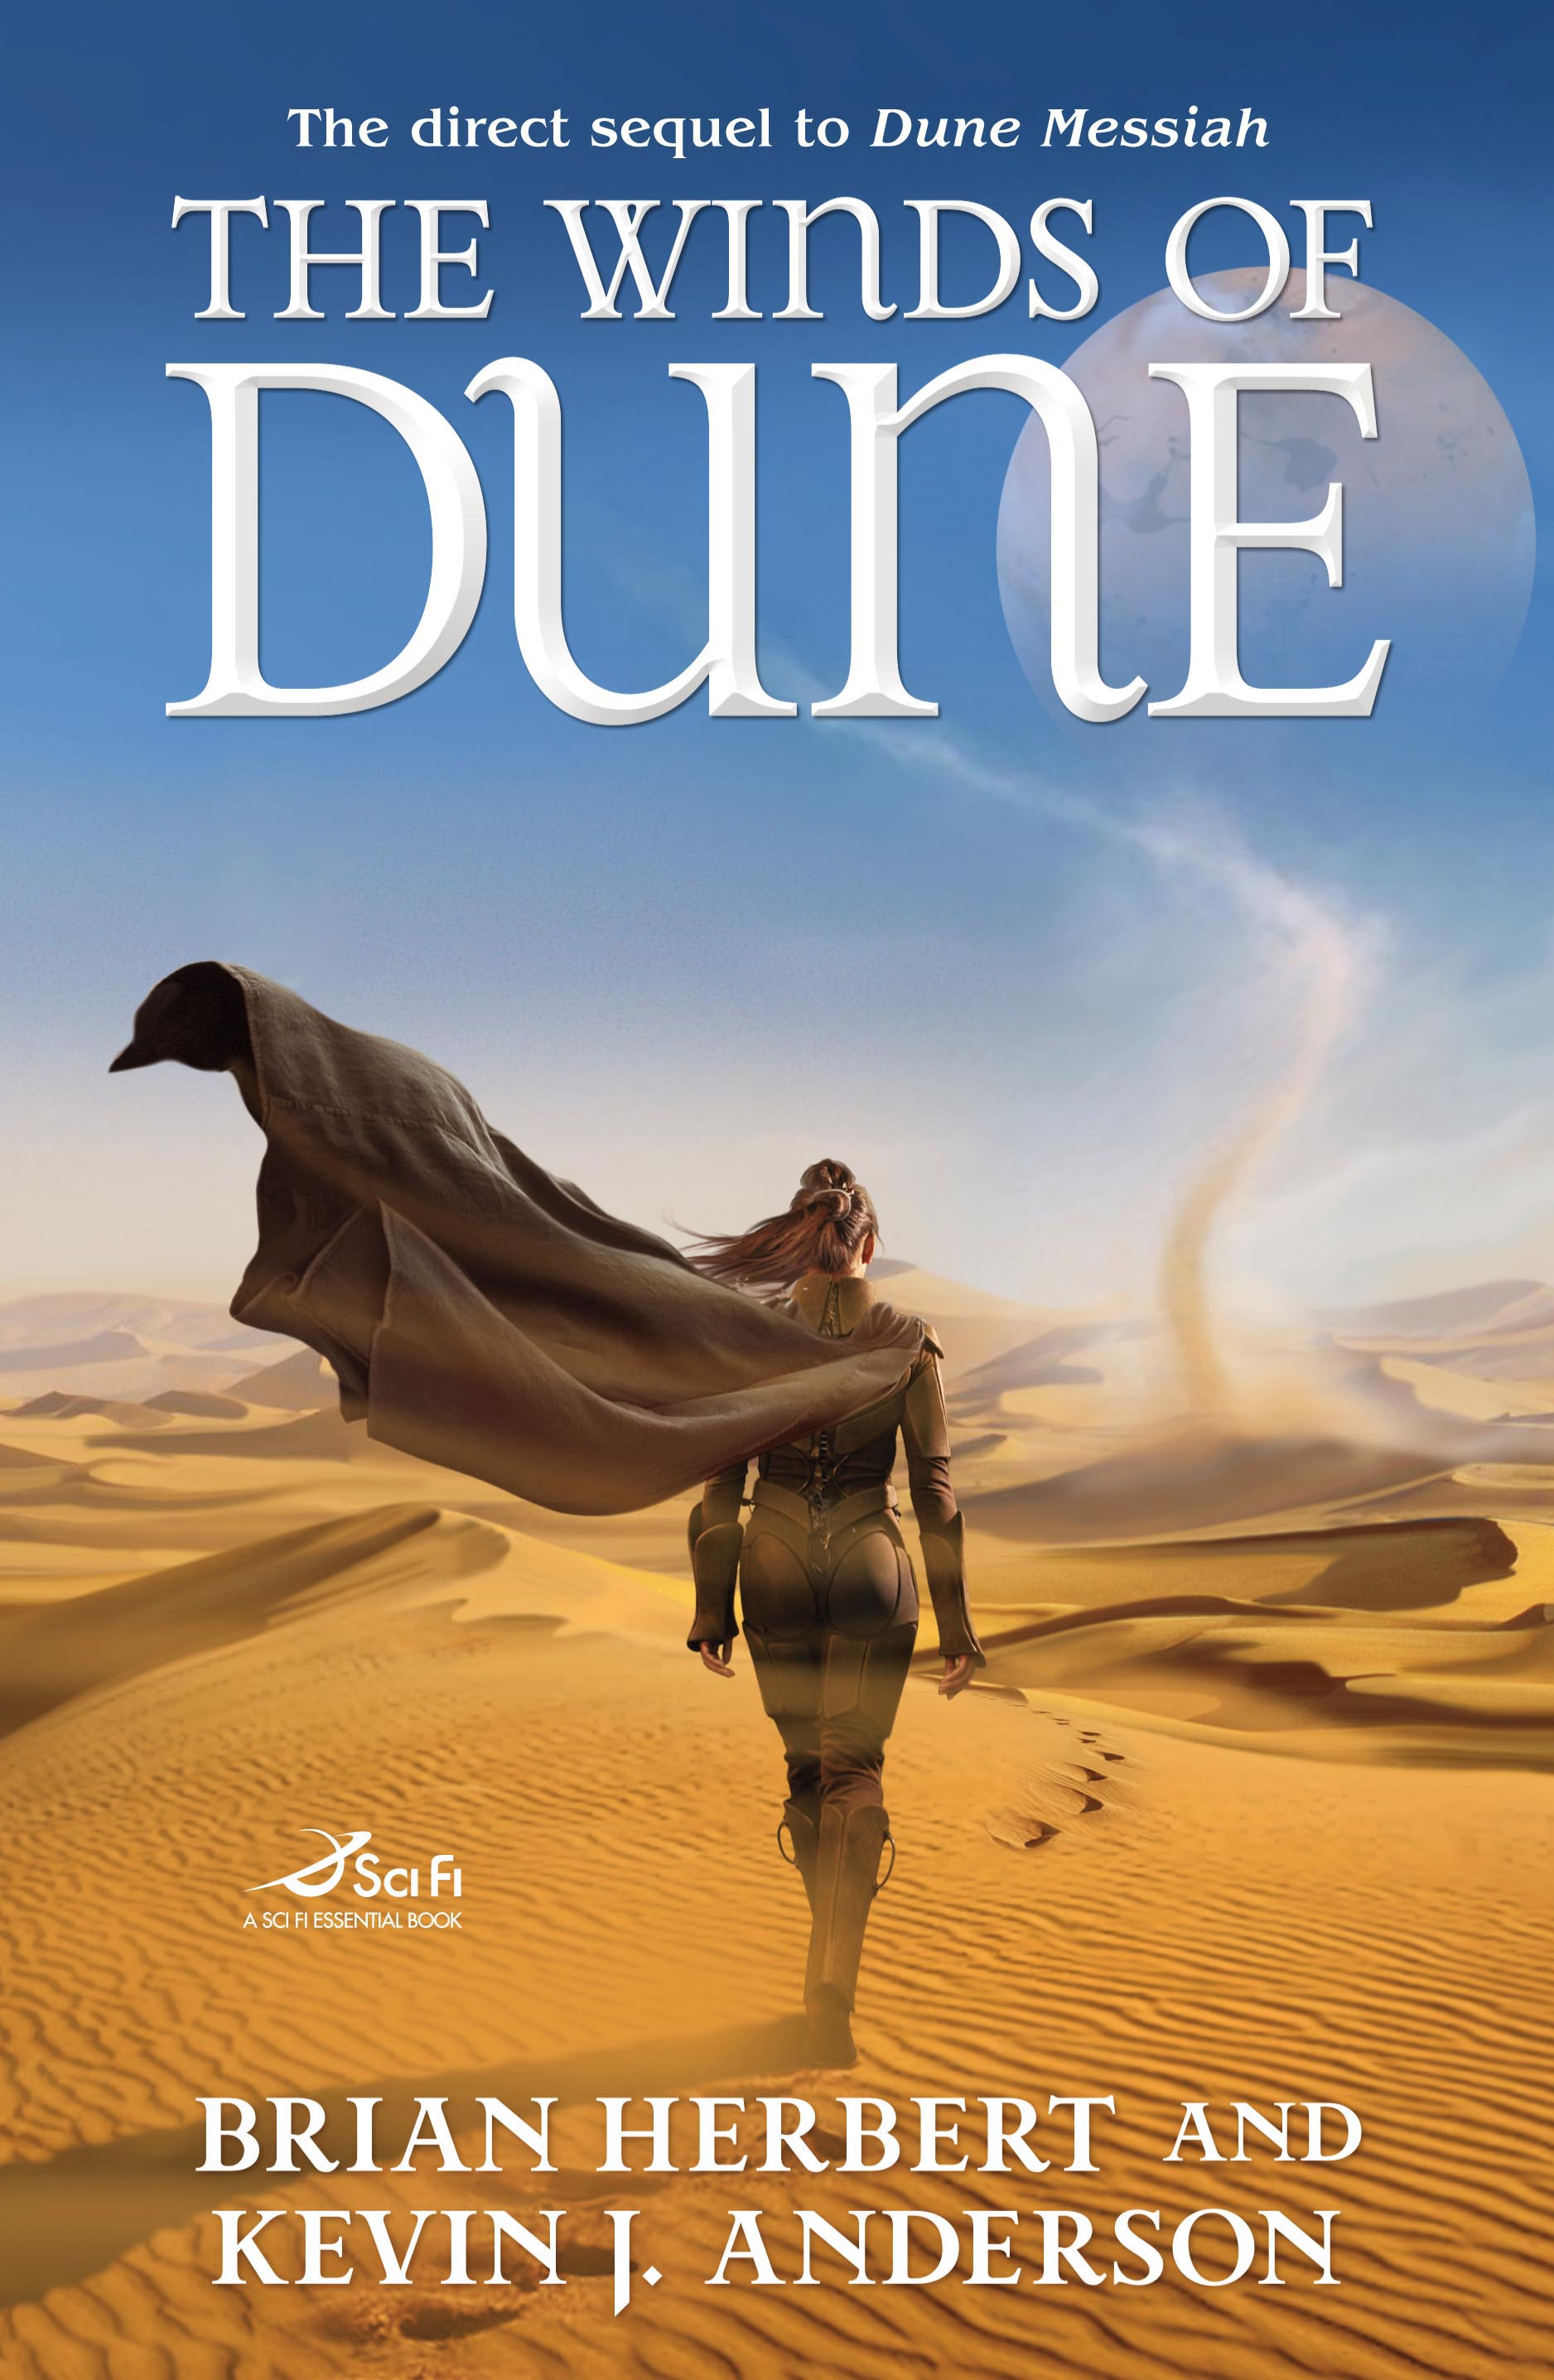 an overview of the character paul in the works of frank herbert maker of the dune unvierse Dune has become the political and economical centre of the universe dune messiah by frank herbert a dune characters, i just never connected with paul or.